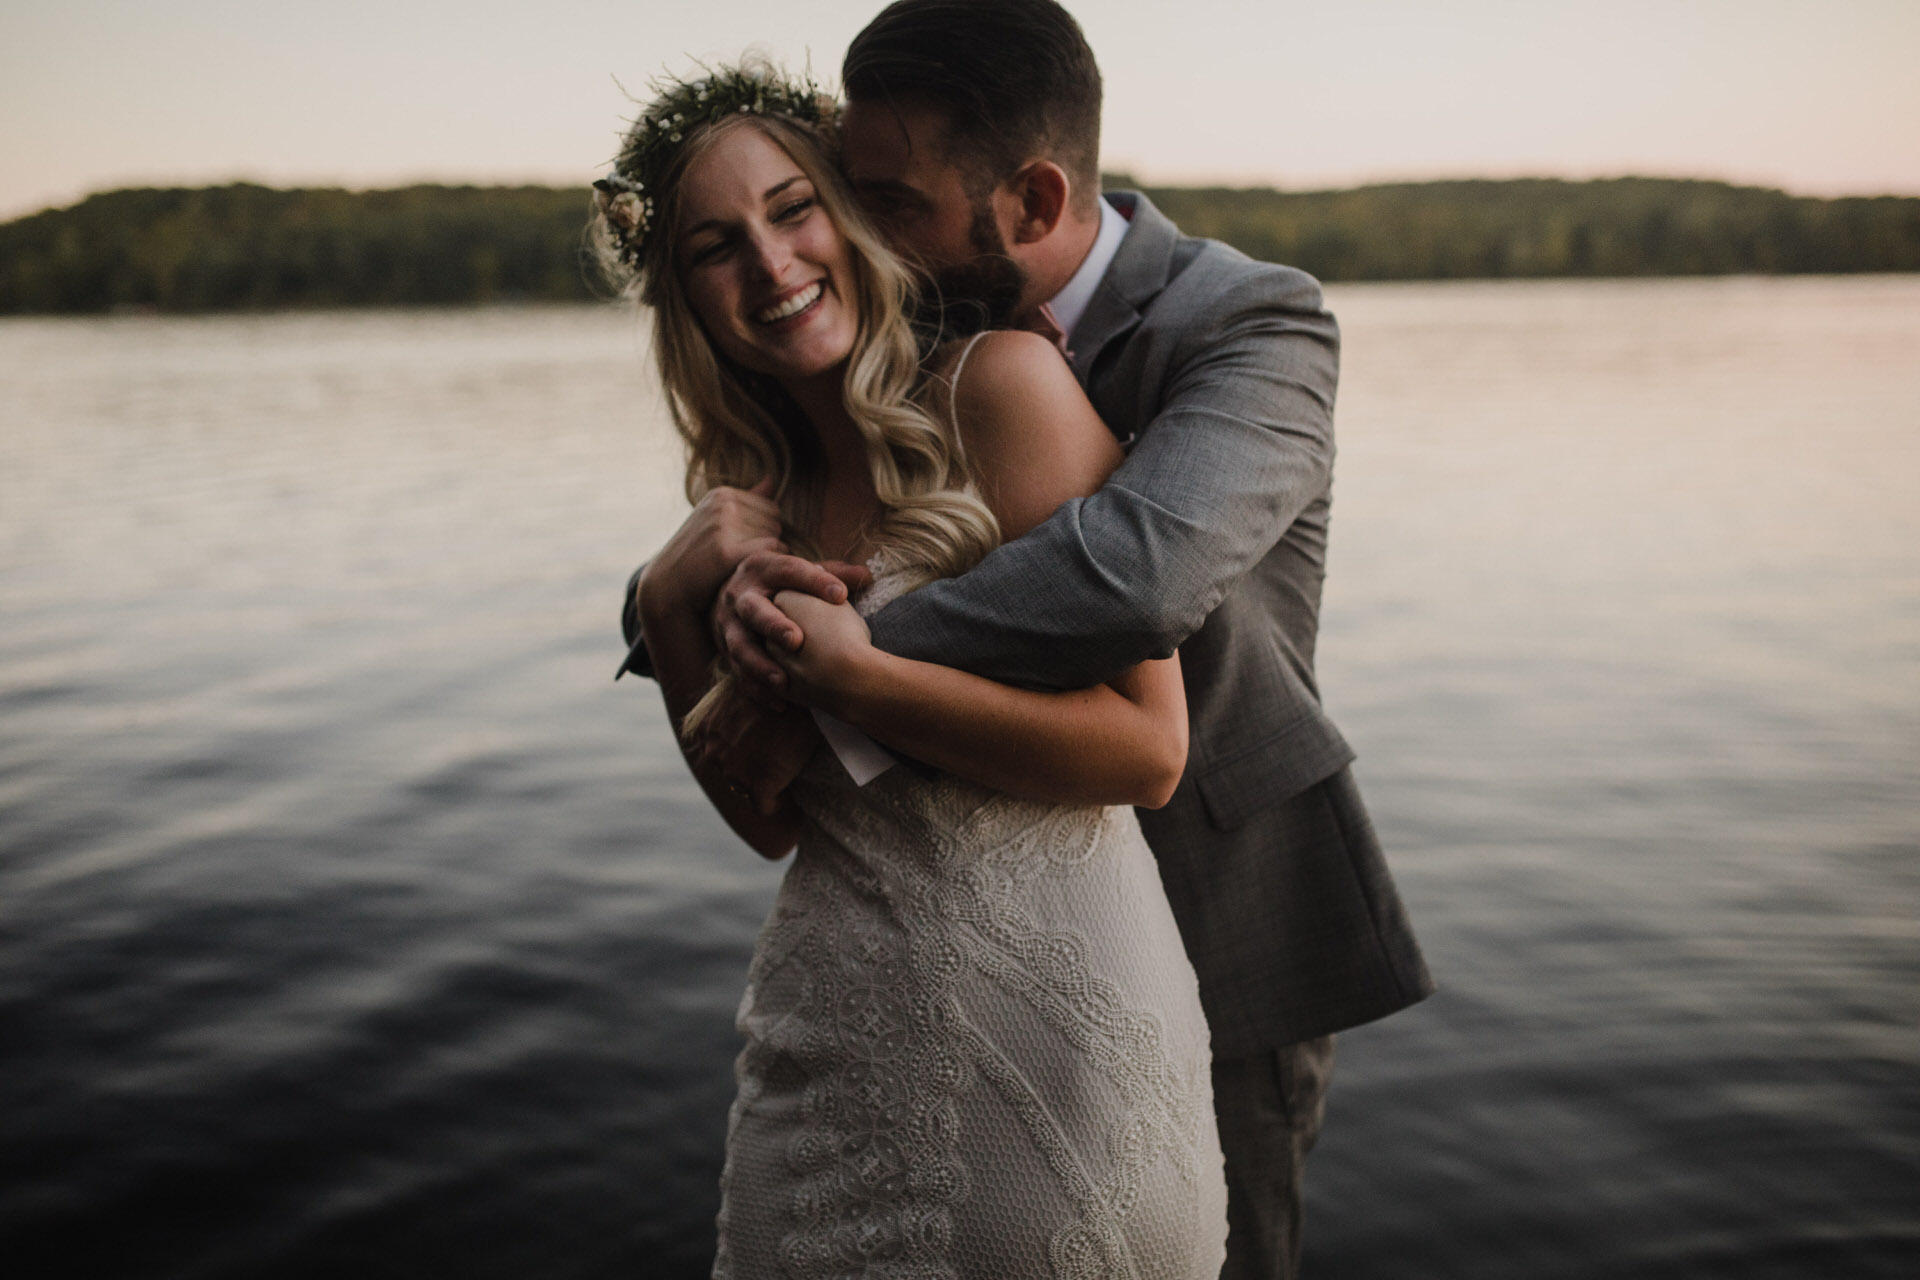 Muskoka Wedding - sneaky kisses on the dock